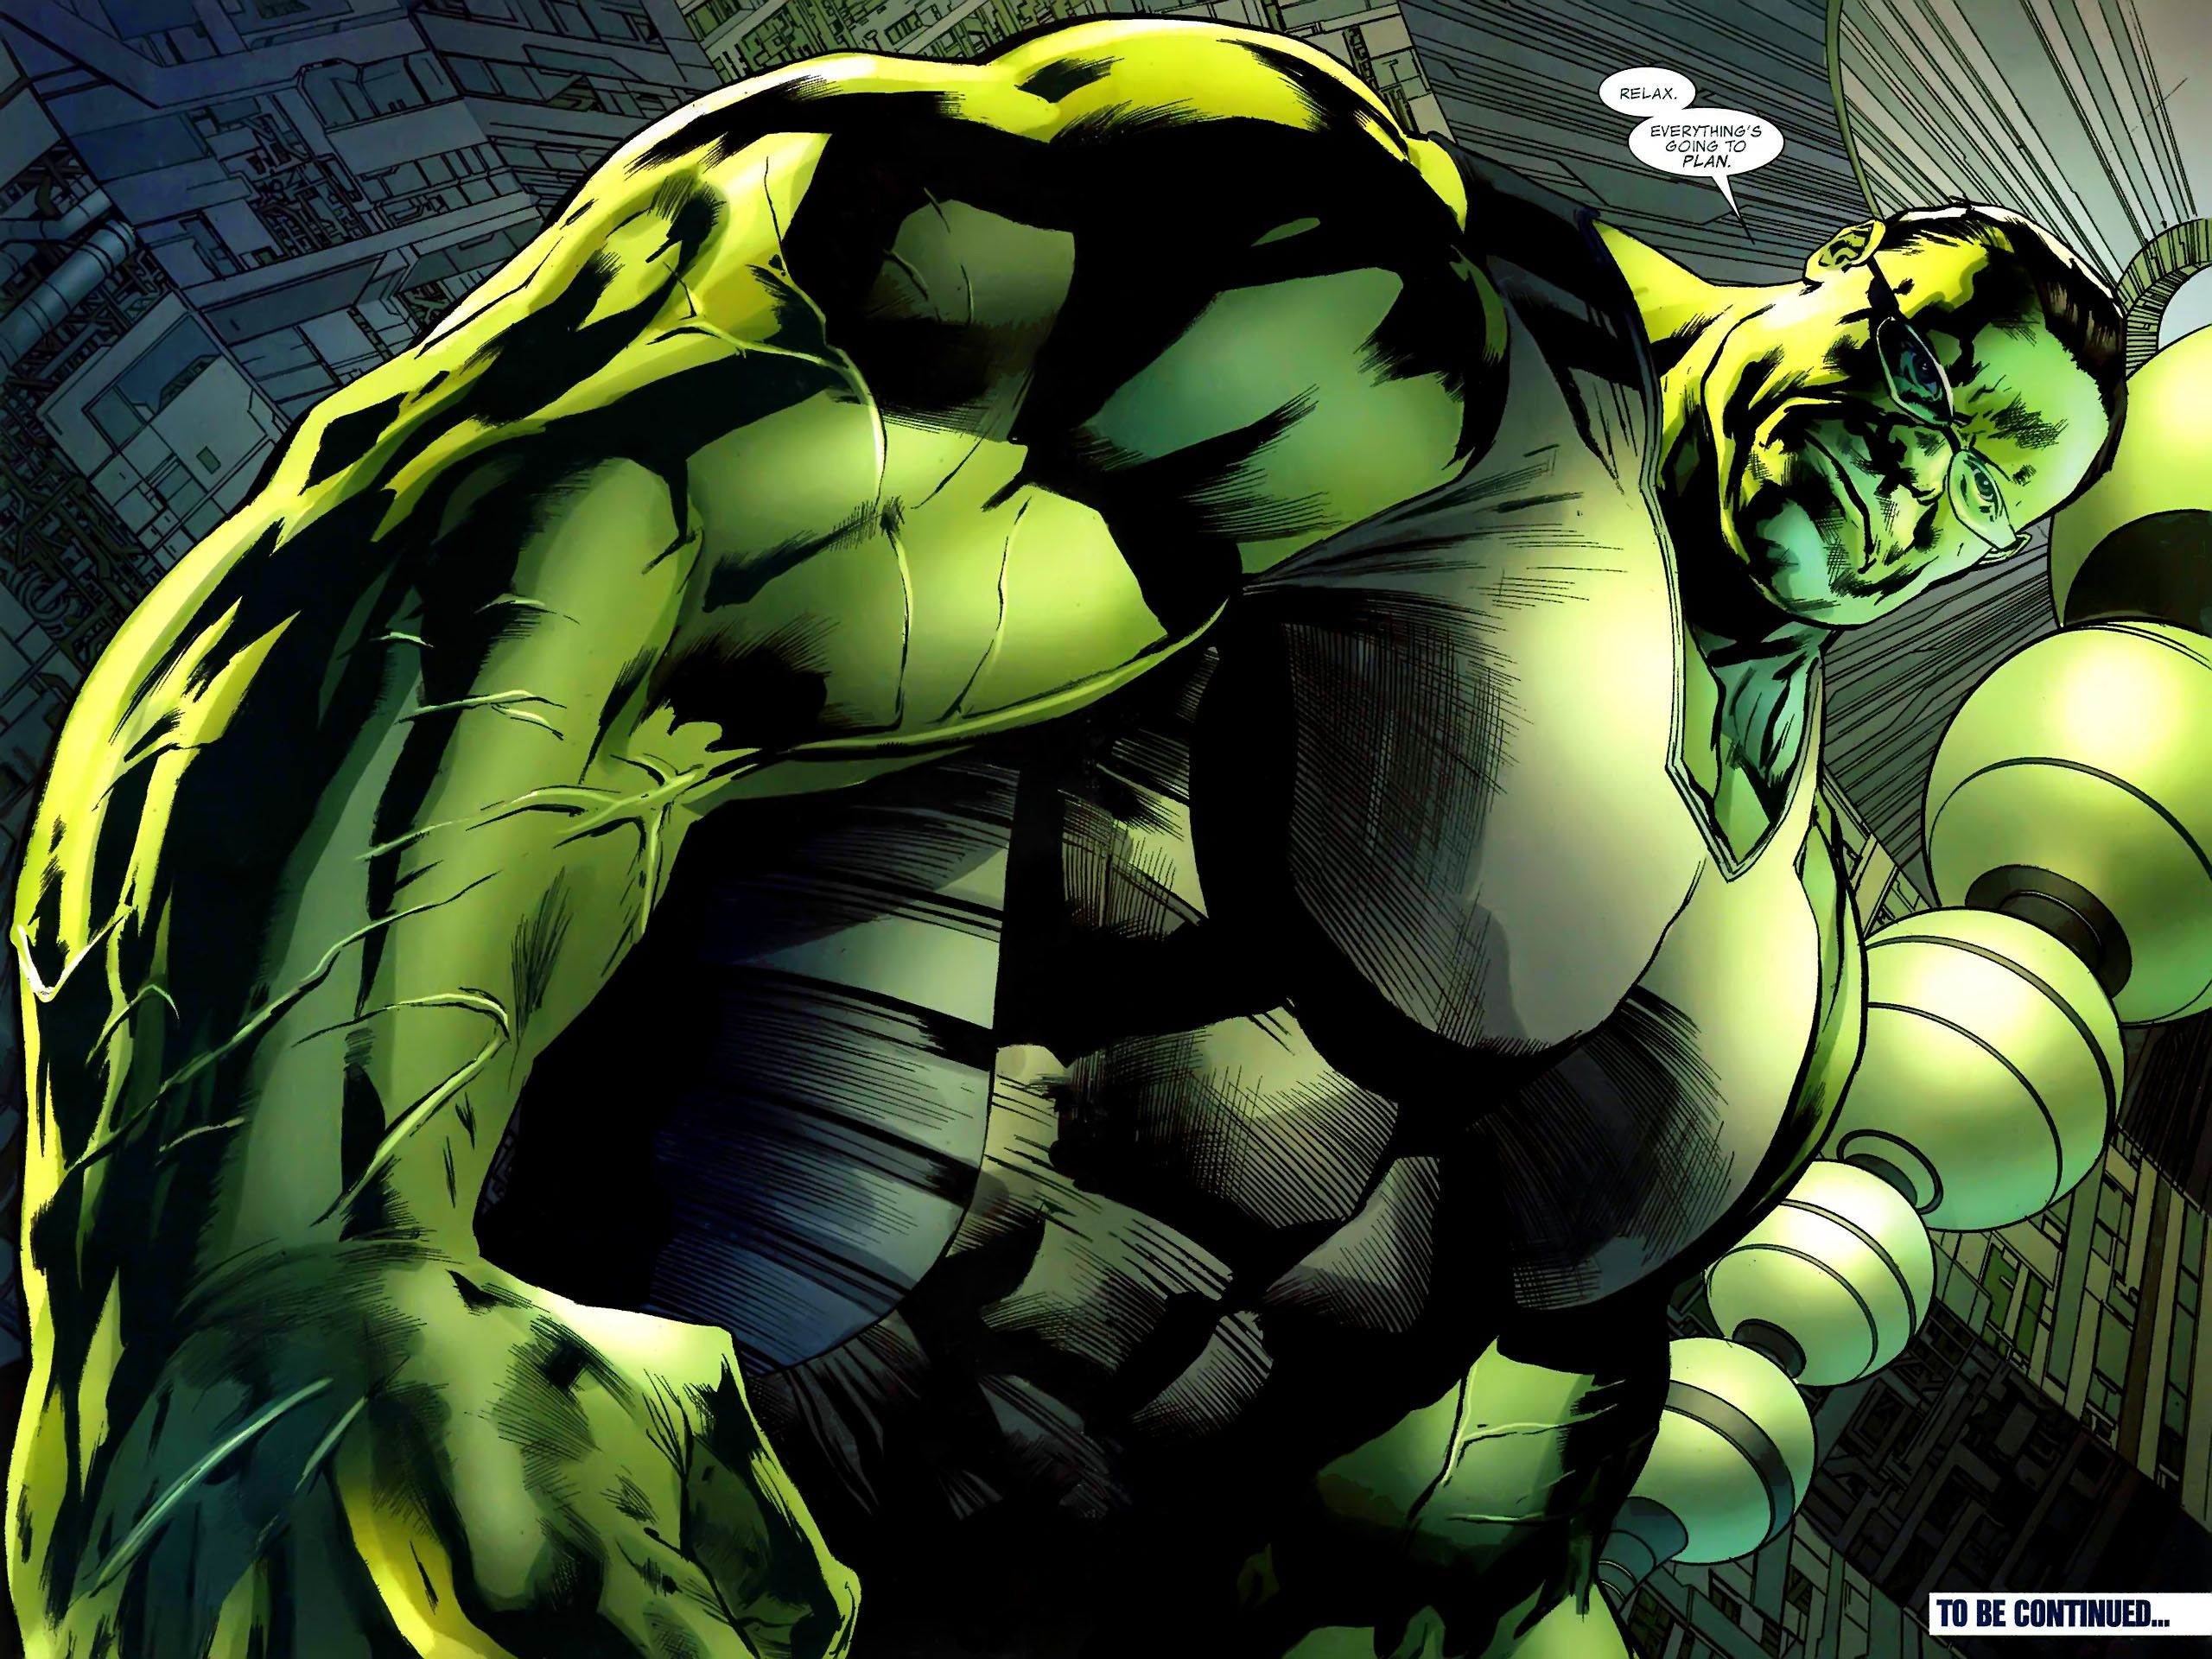 Res: 2560x1920, Incredible Hulk Marvel Comics Wallpaper